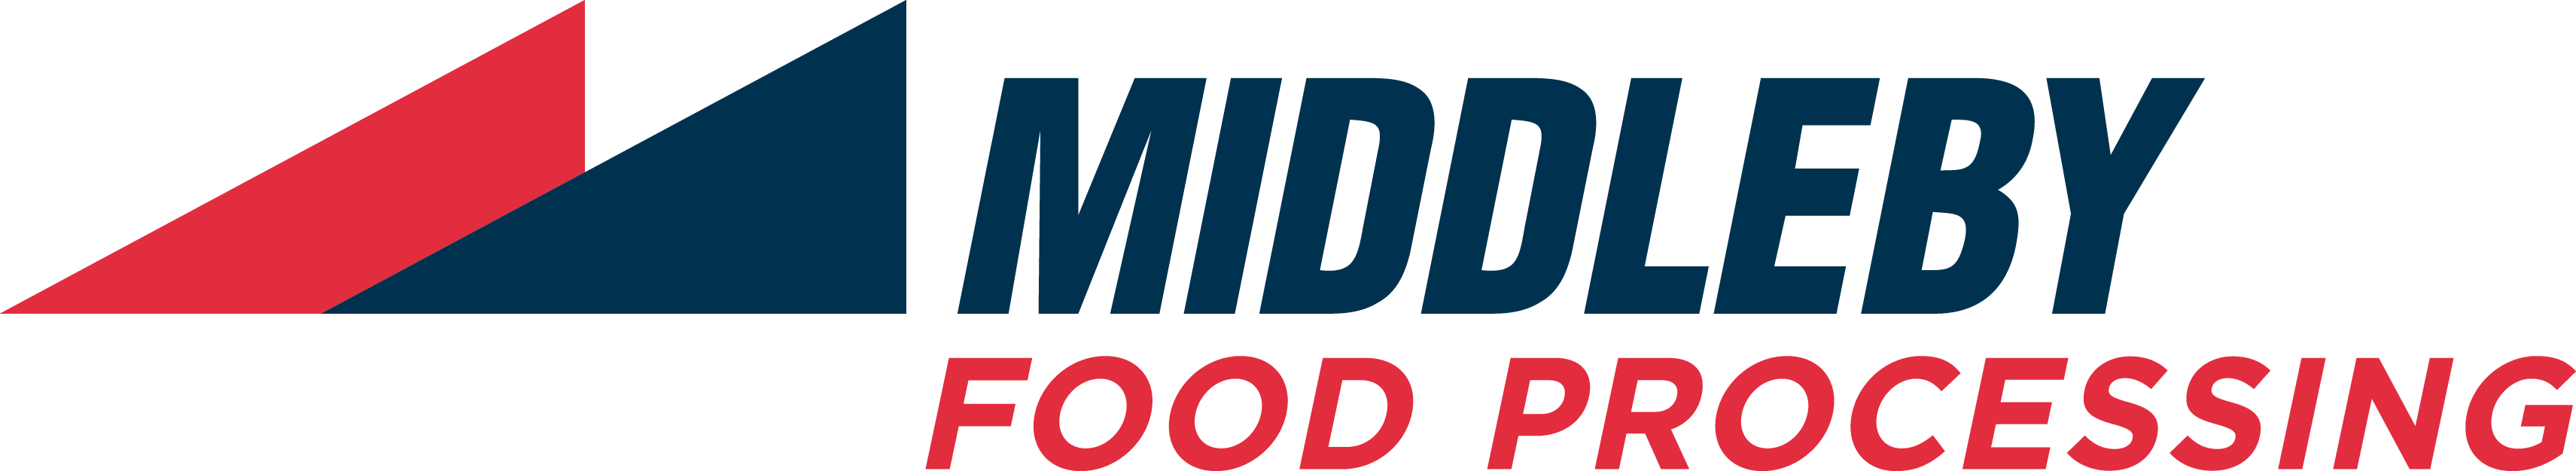 MiddlebyFood Processing